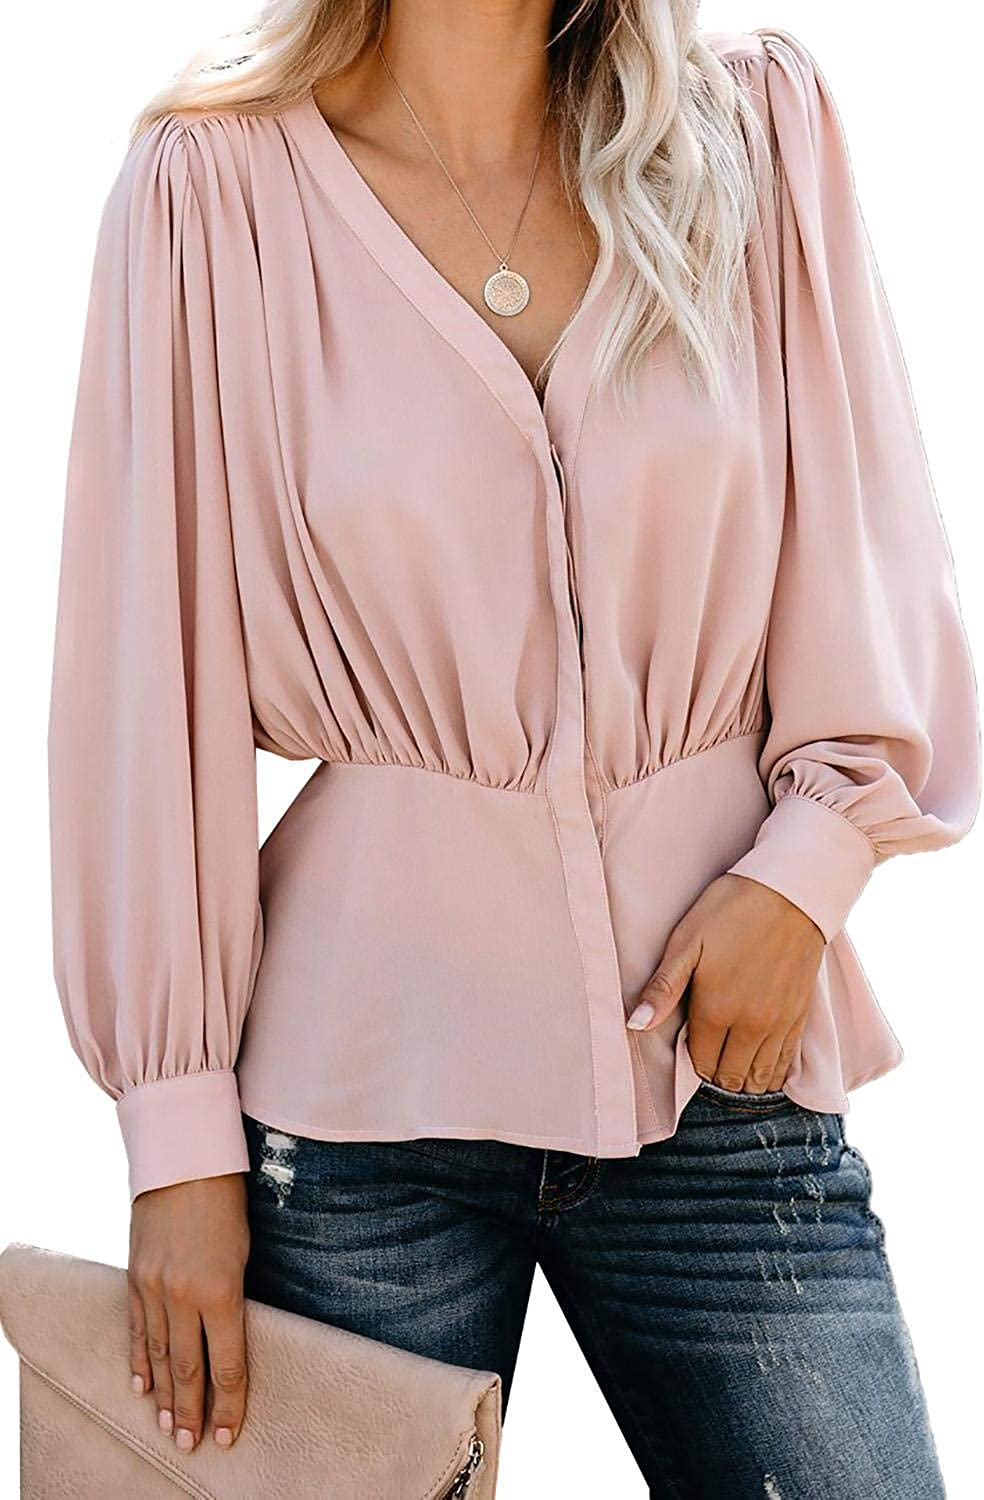 Ms. Acuna Women's Pink Button Down Pleated Blouse Peplum Waist Long Sleeve Casual Top Blouse V Neck Button Down Front